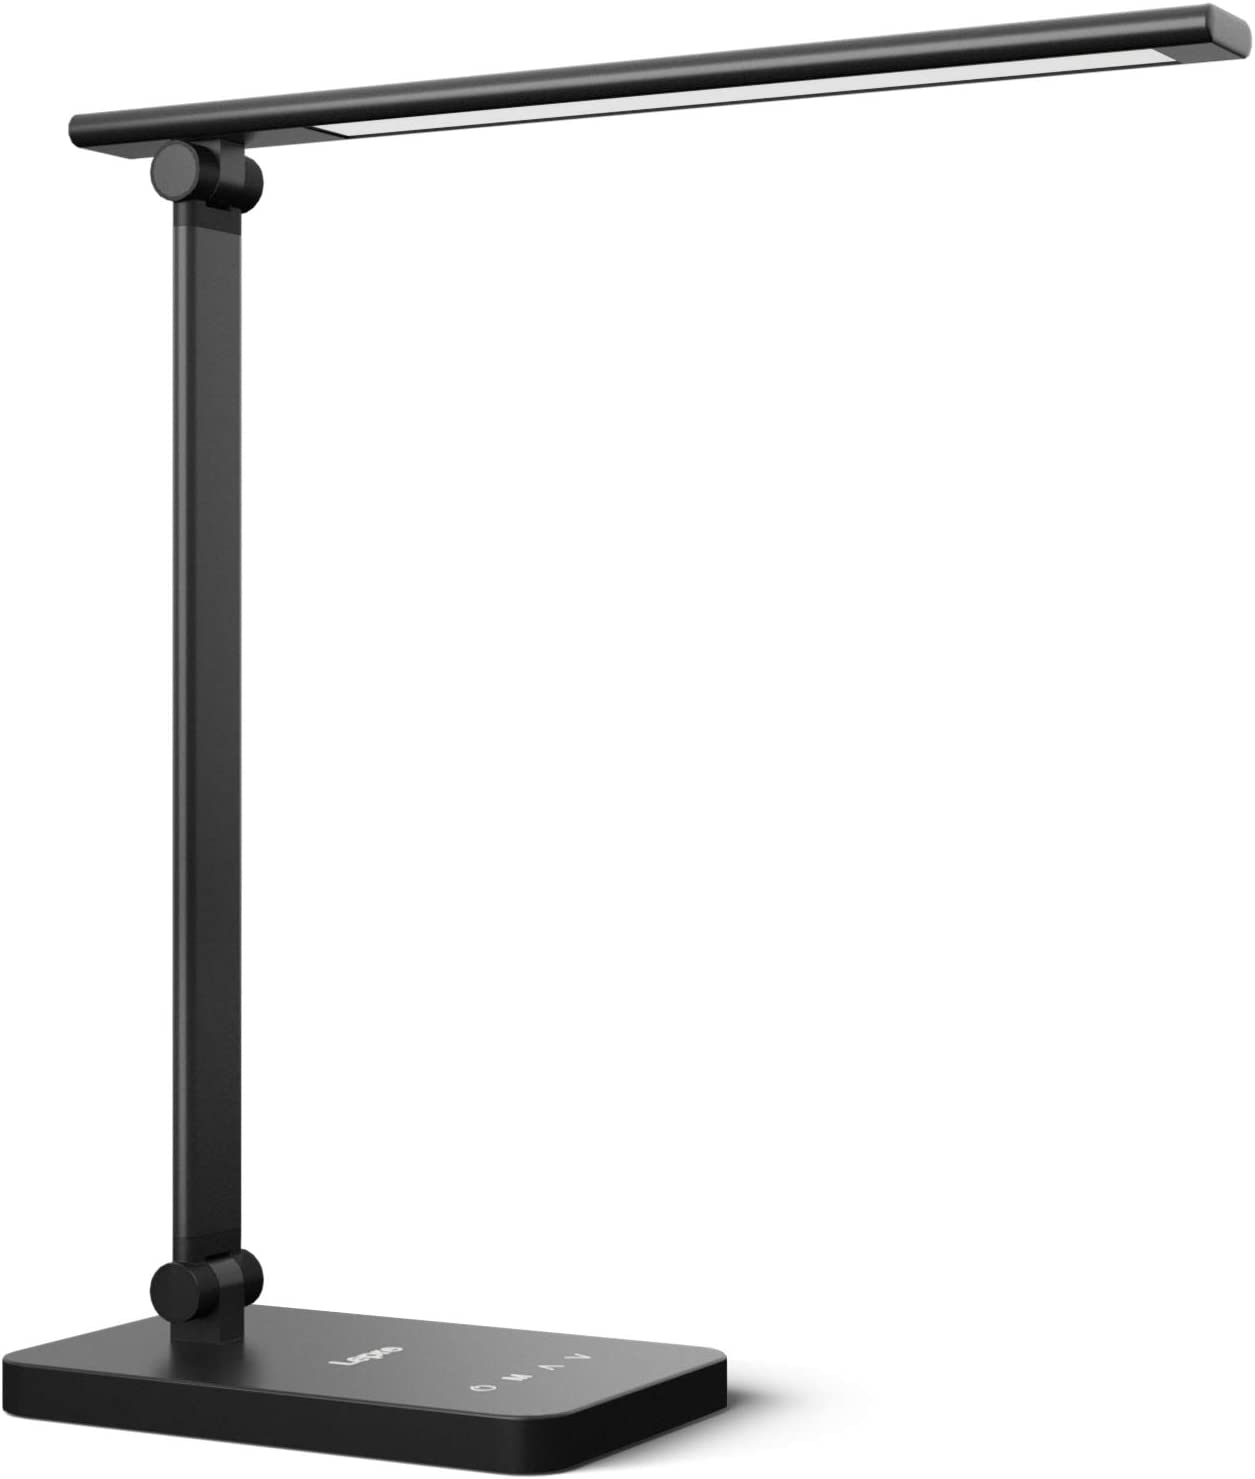 Lepro LED Desk Lamp Dimmable Home Office Lamp Touch Control 9W Bright Reading Table Lamp, 3 Color Modes with 5 Brightness Level, Eye Caring Diffused Natural Light, Sleek Modern Task Lamp (Black)